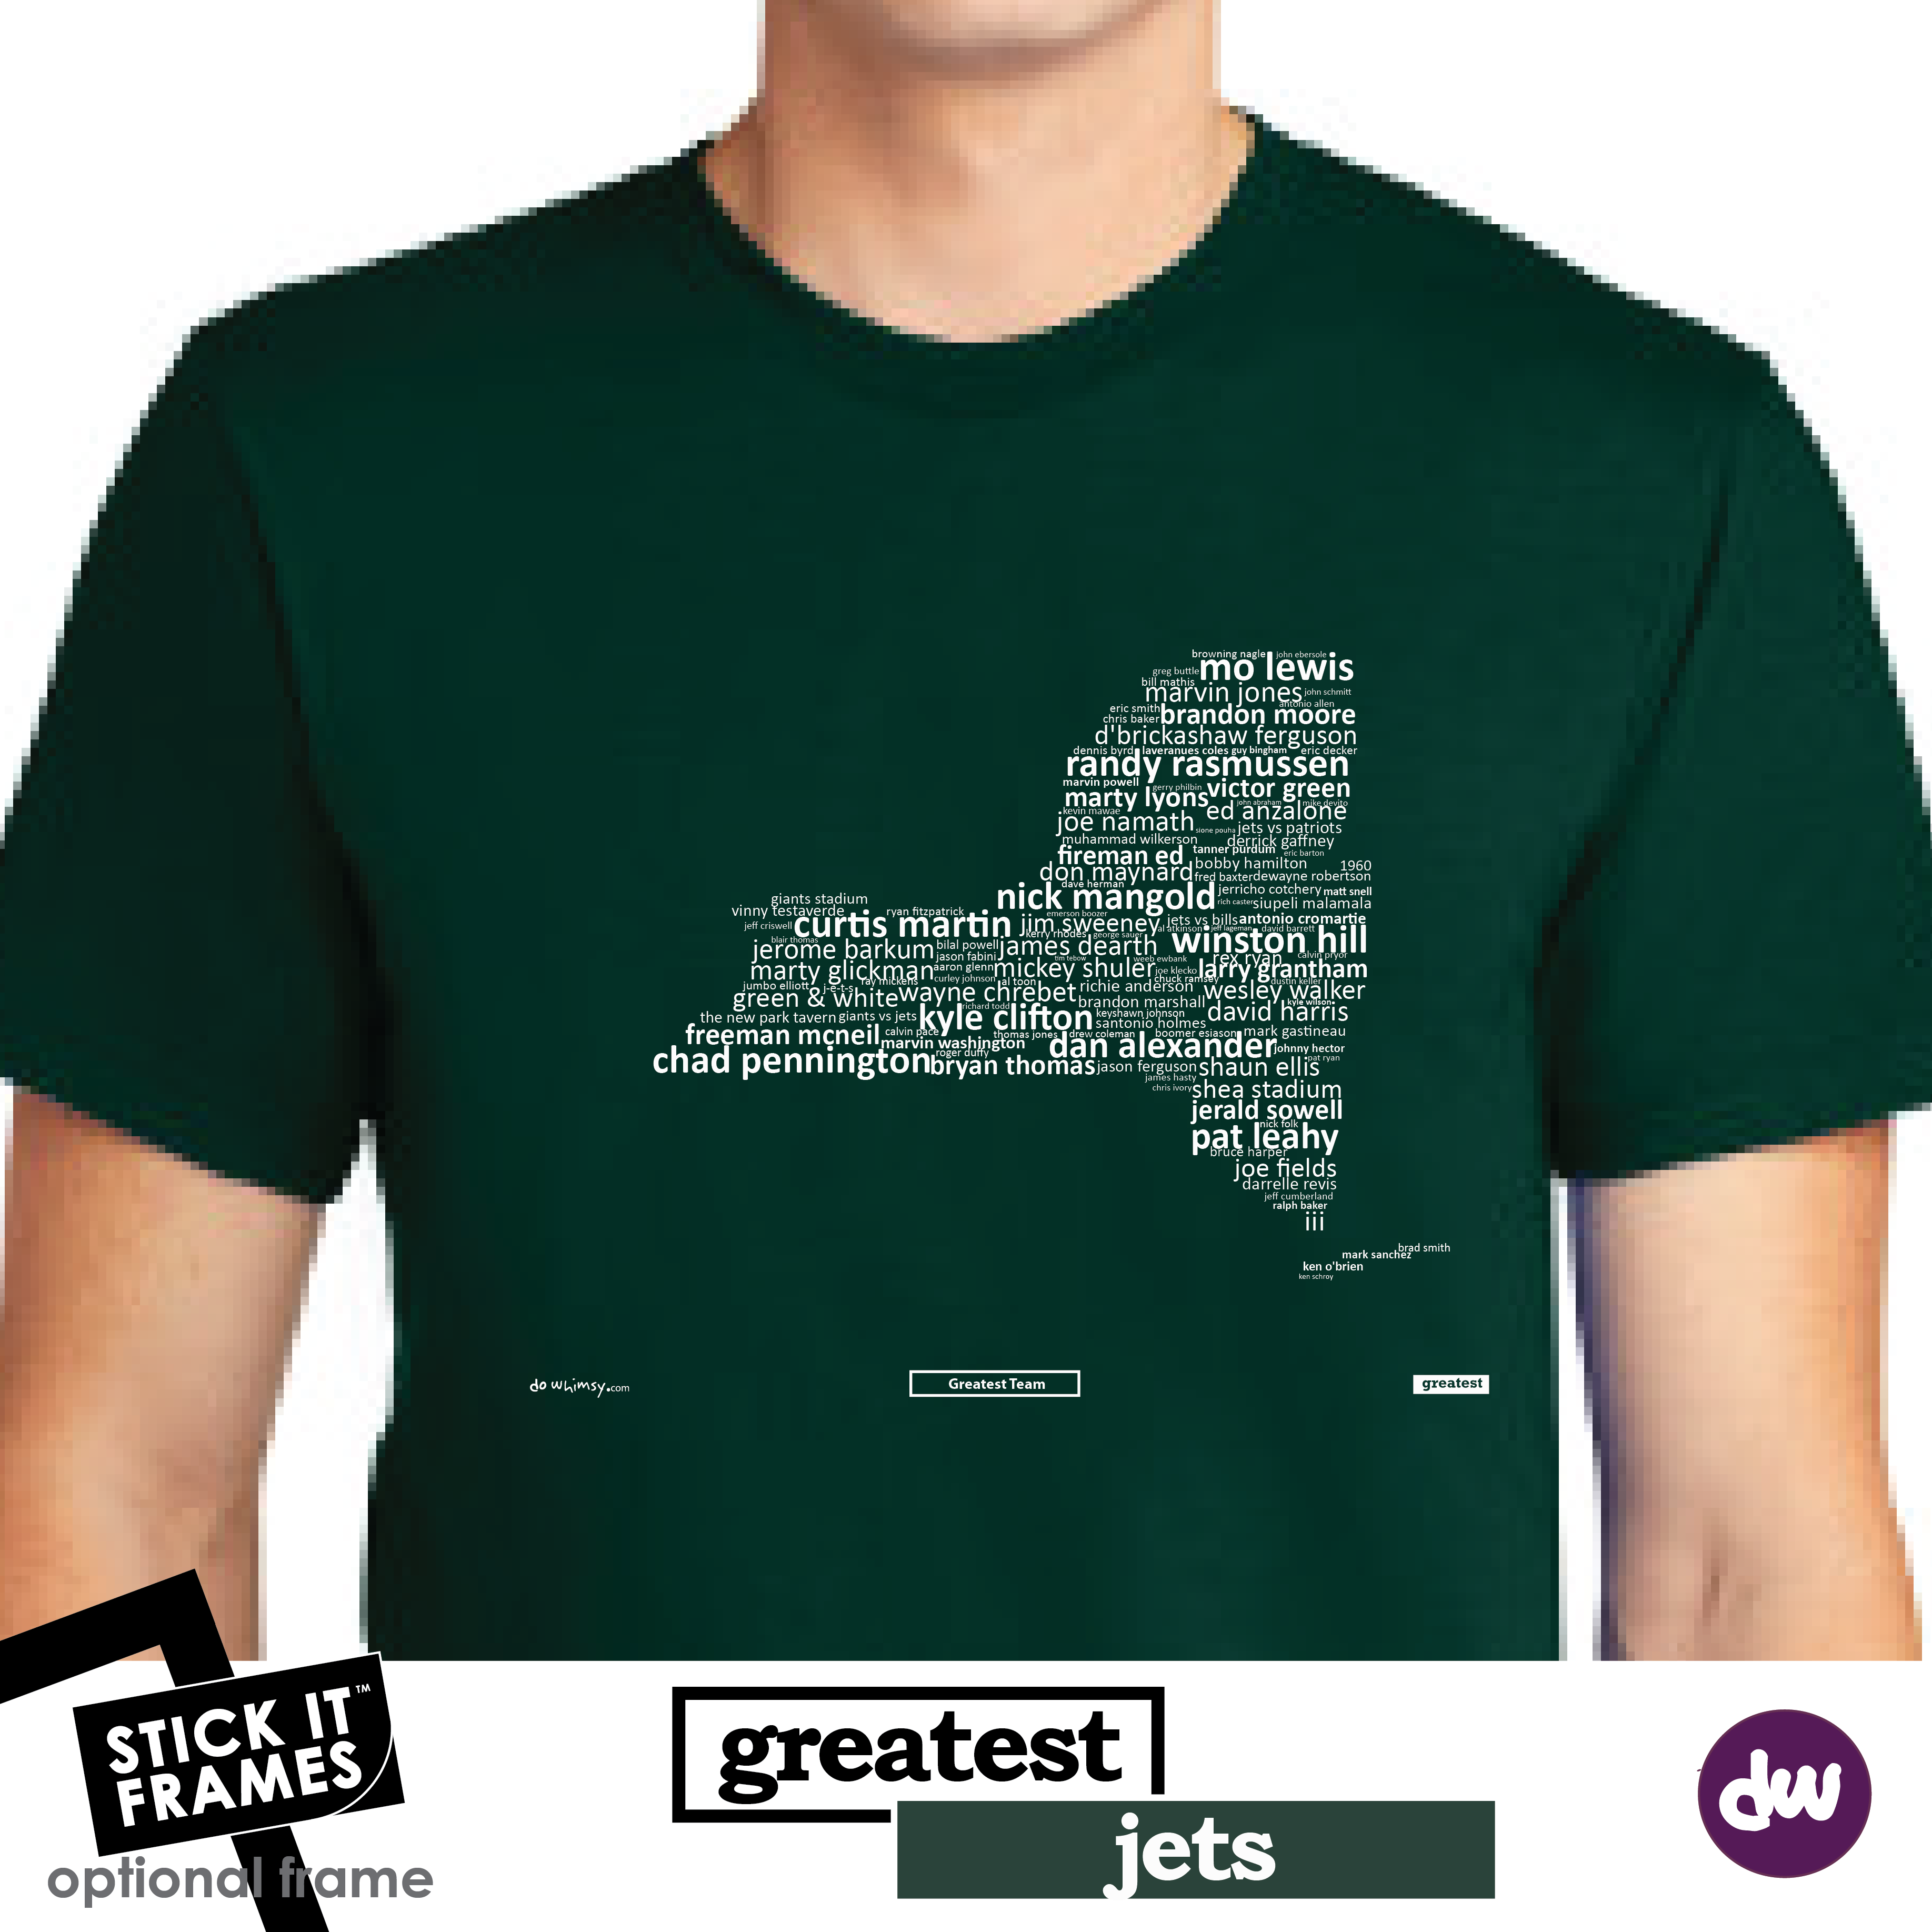 Greatest New York (Jets) - All Products (Shirt, Art, Frames (R))